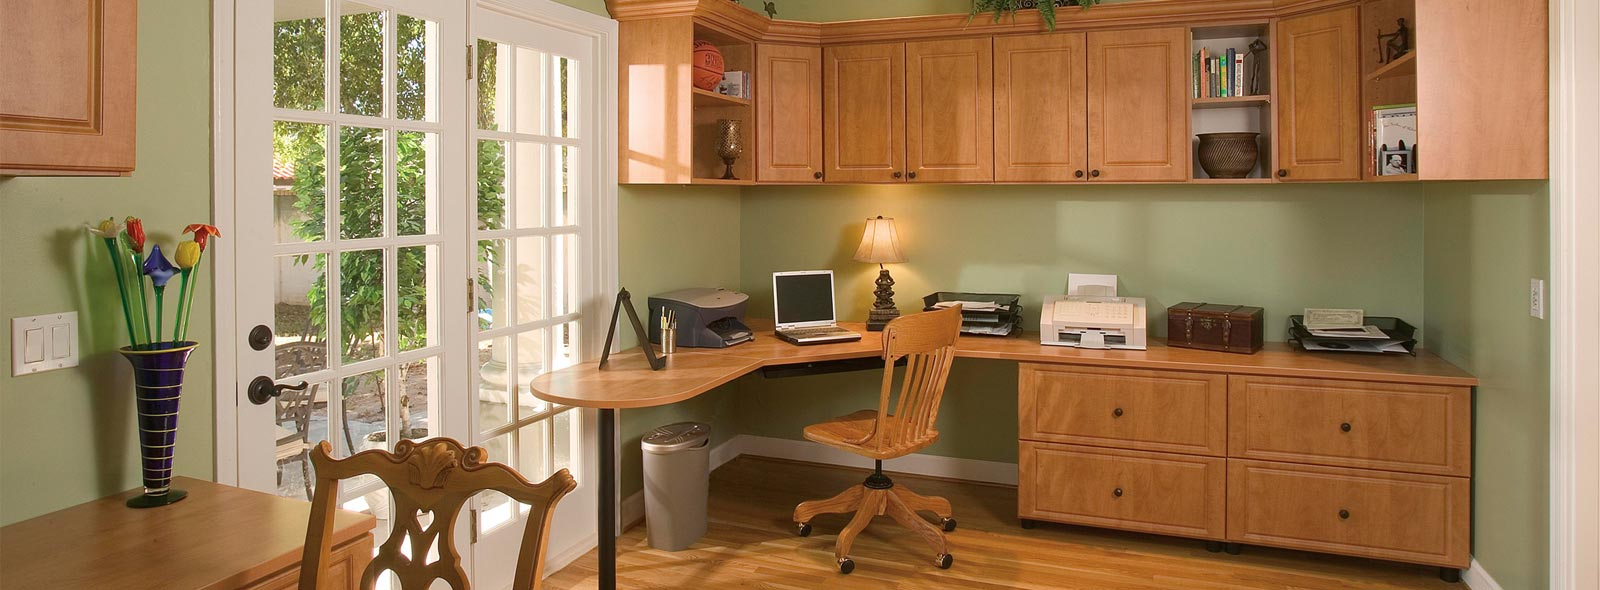 Home Office Cabinets Home Office Organizers Office Cabinets Home Office Shelves